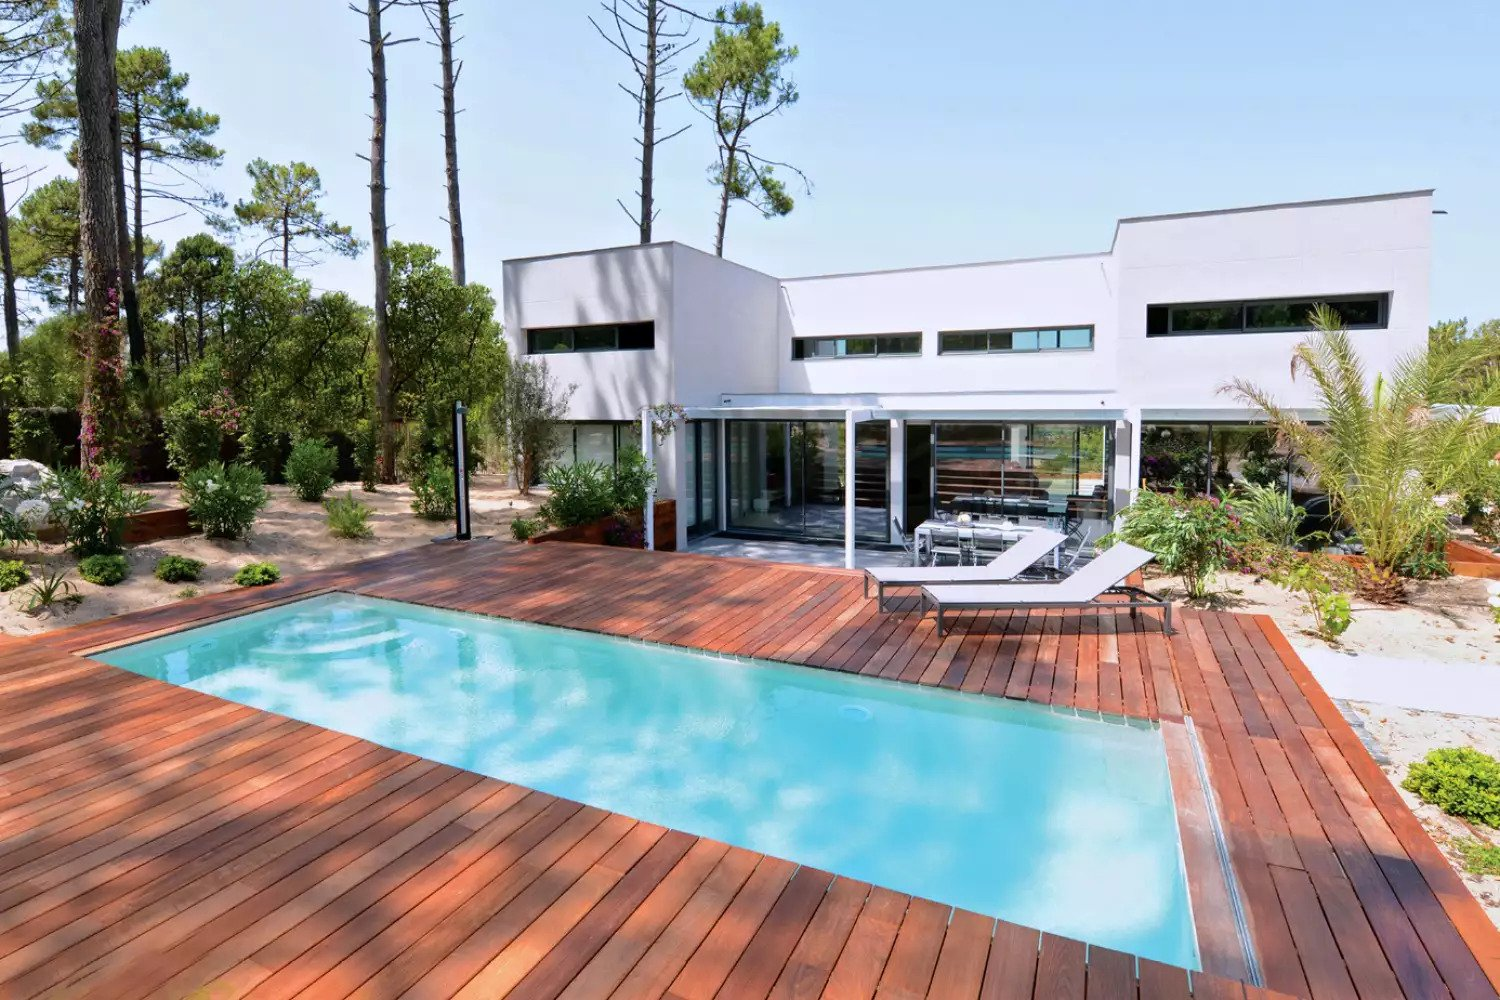 The Most Popular Swimming Pool Designs and Shapes